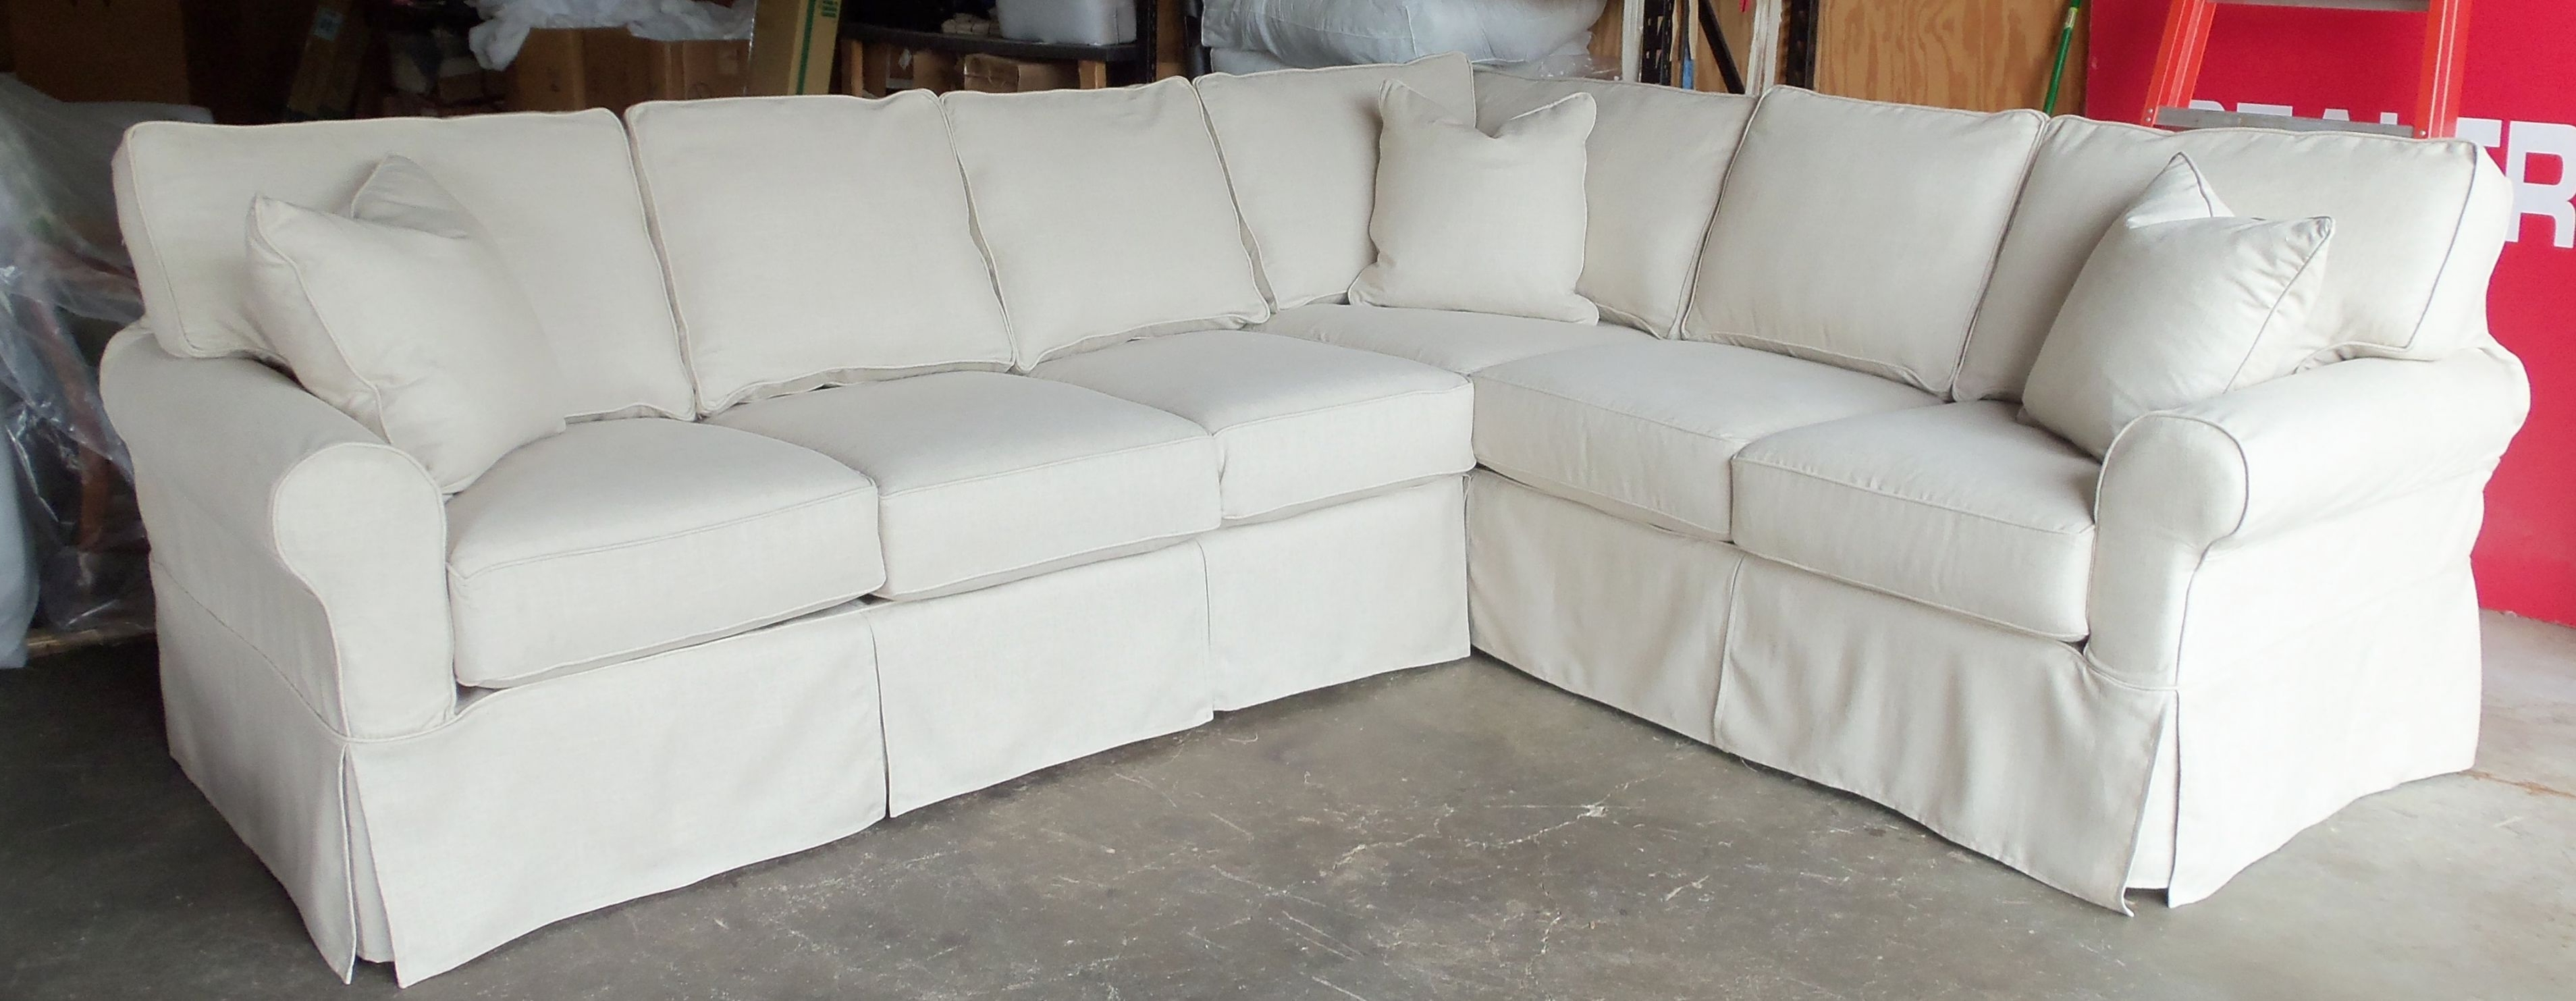 Well Known Sectional Sofas At Birmingham Al With Cheap Sectional Sofas In Birmingham Al (View 14 of 15)